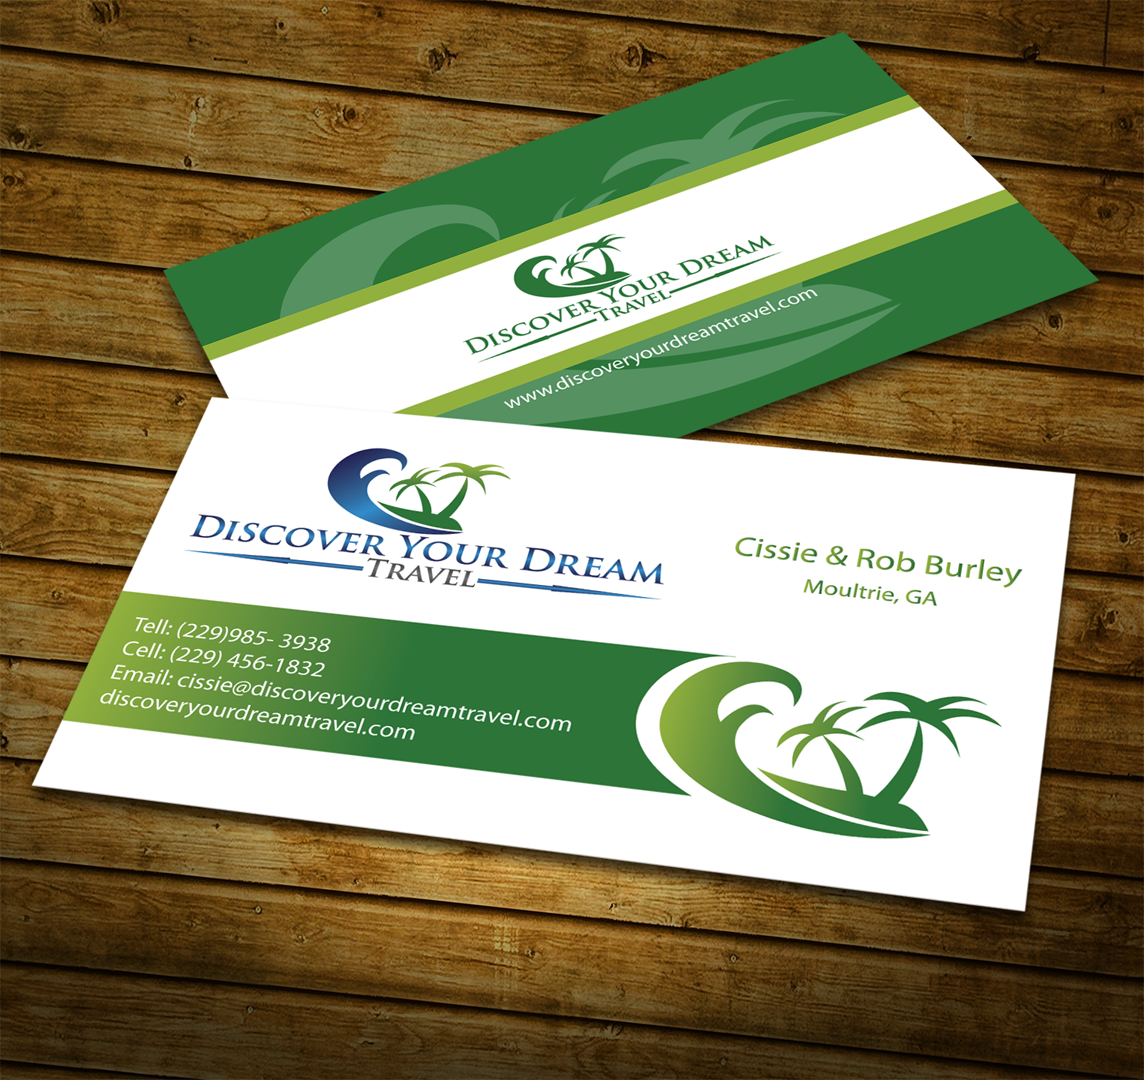 Business cards/ Stationary for new travel agency - Travel